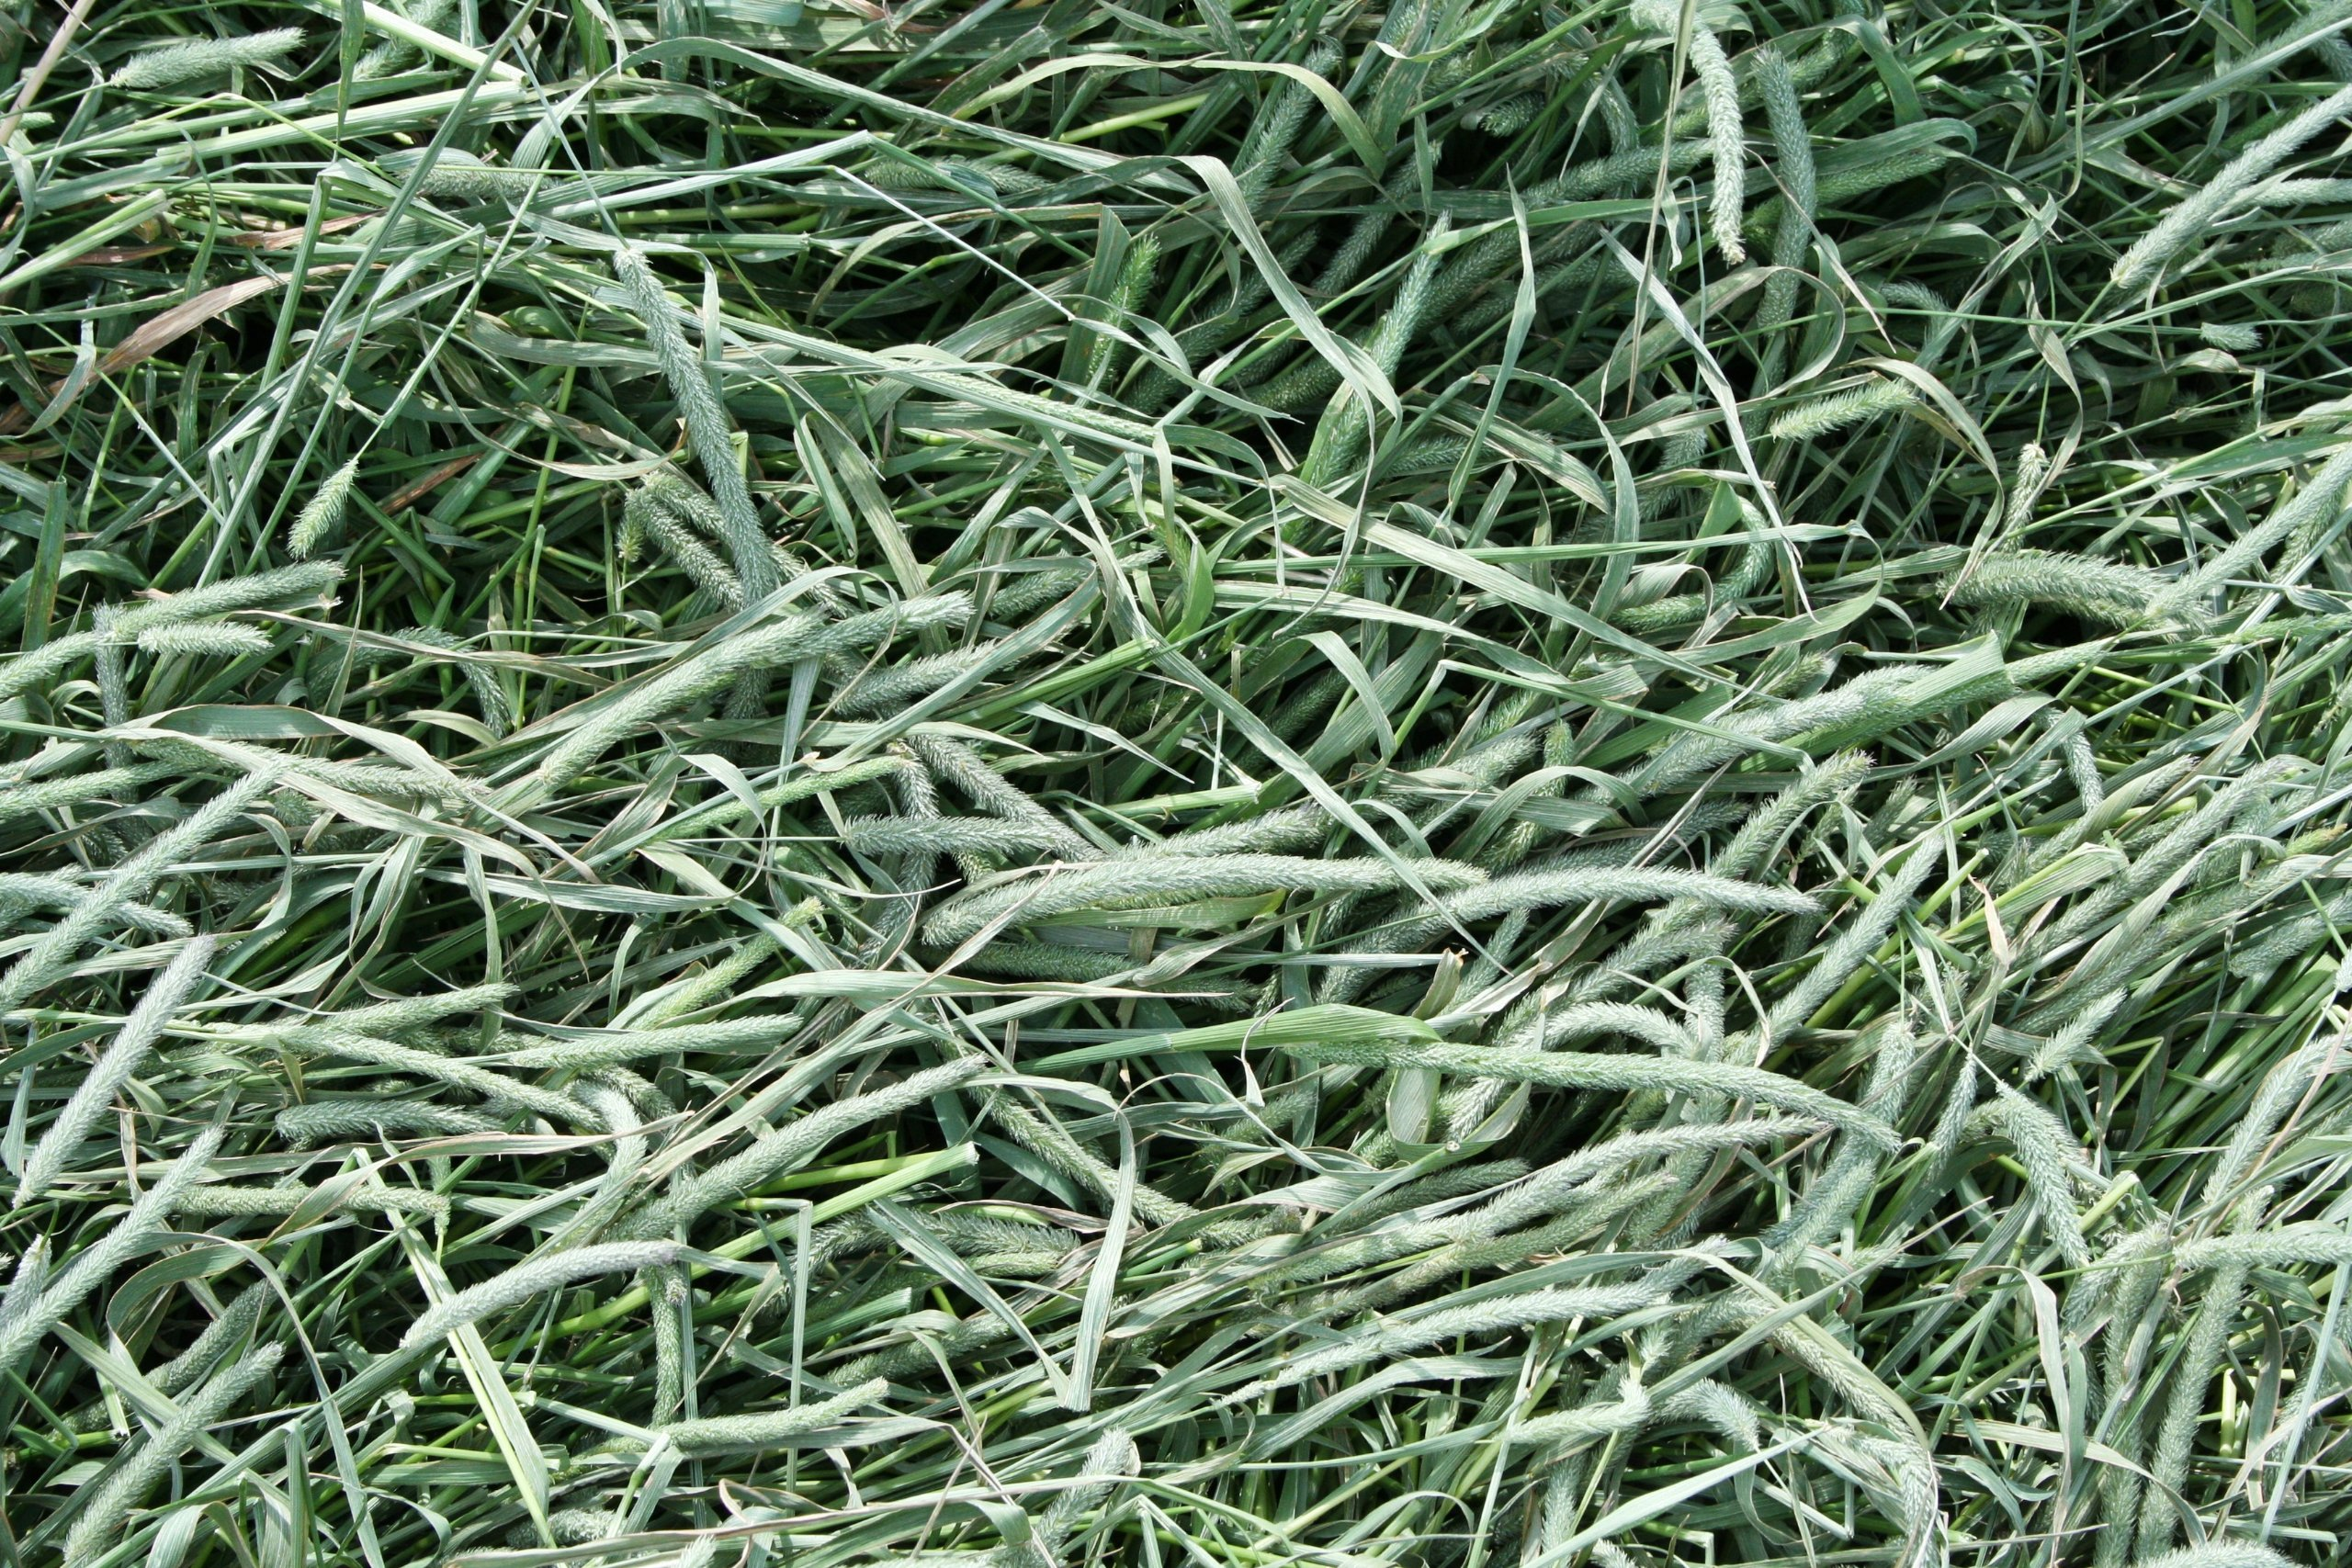 Standlee Premium Western Forage Timothy Grass, 25Lb Box by Standlee Hay Company (Image #2)